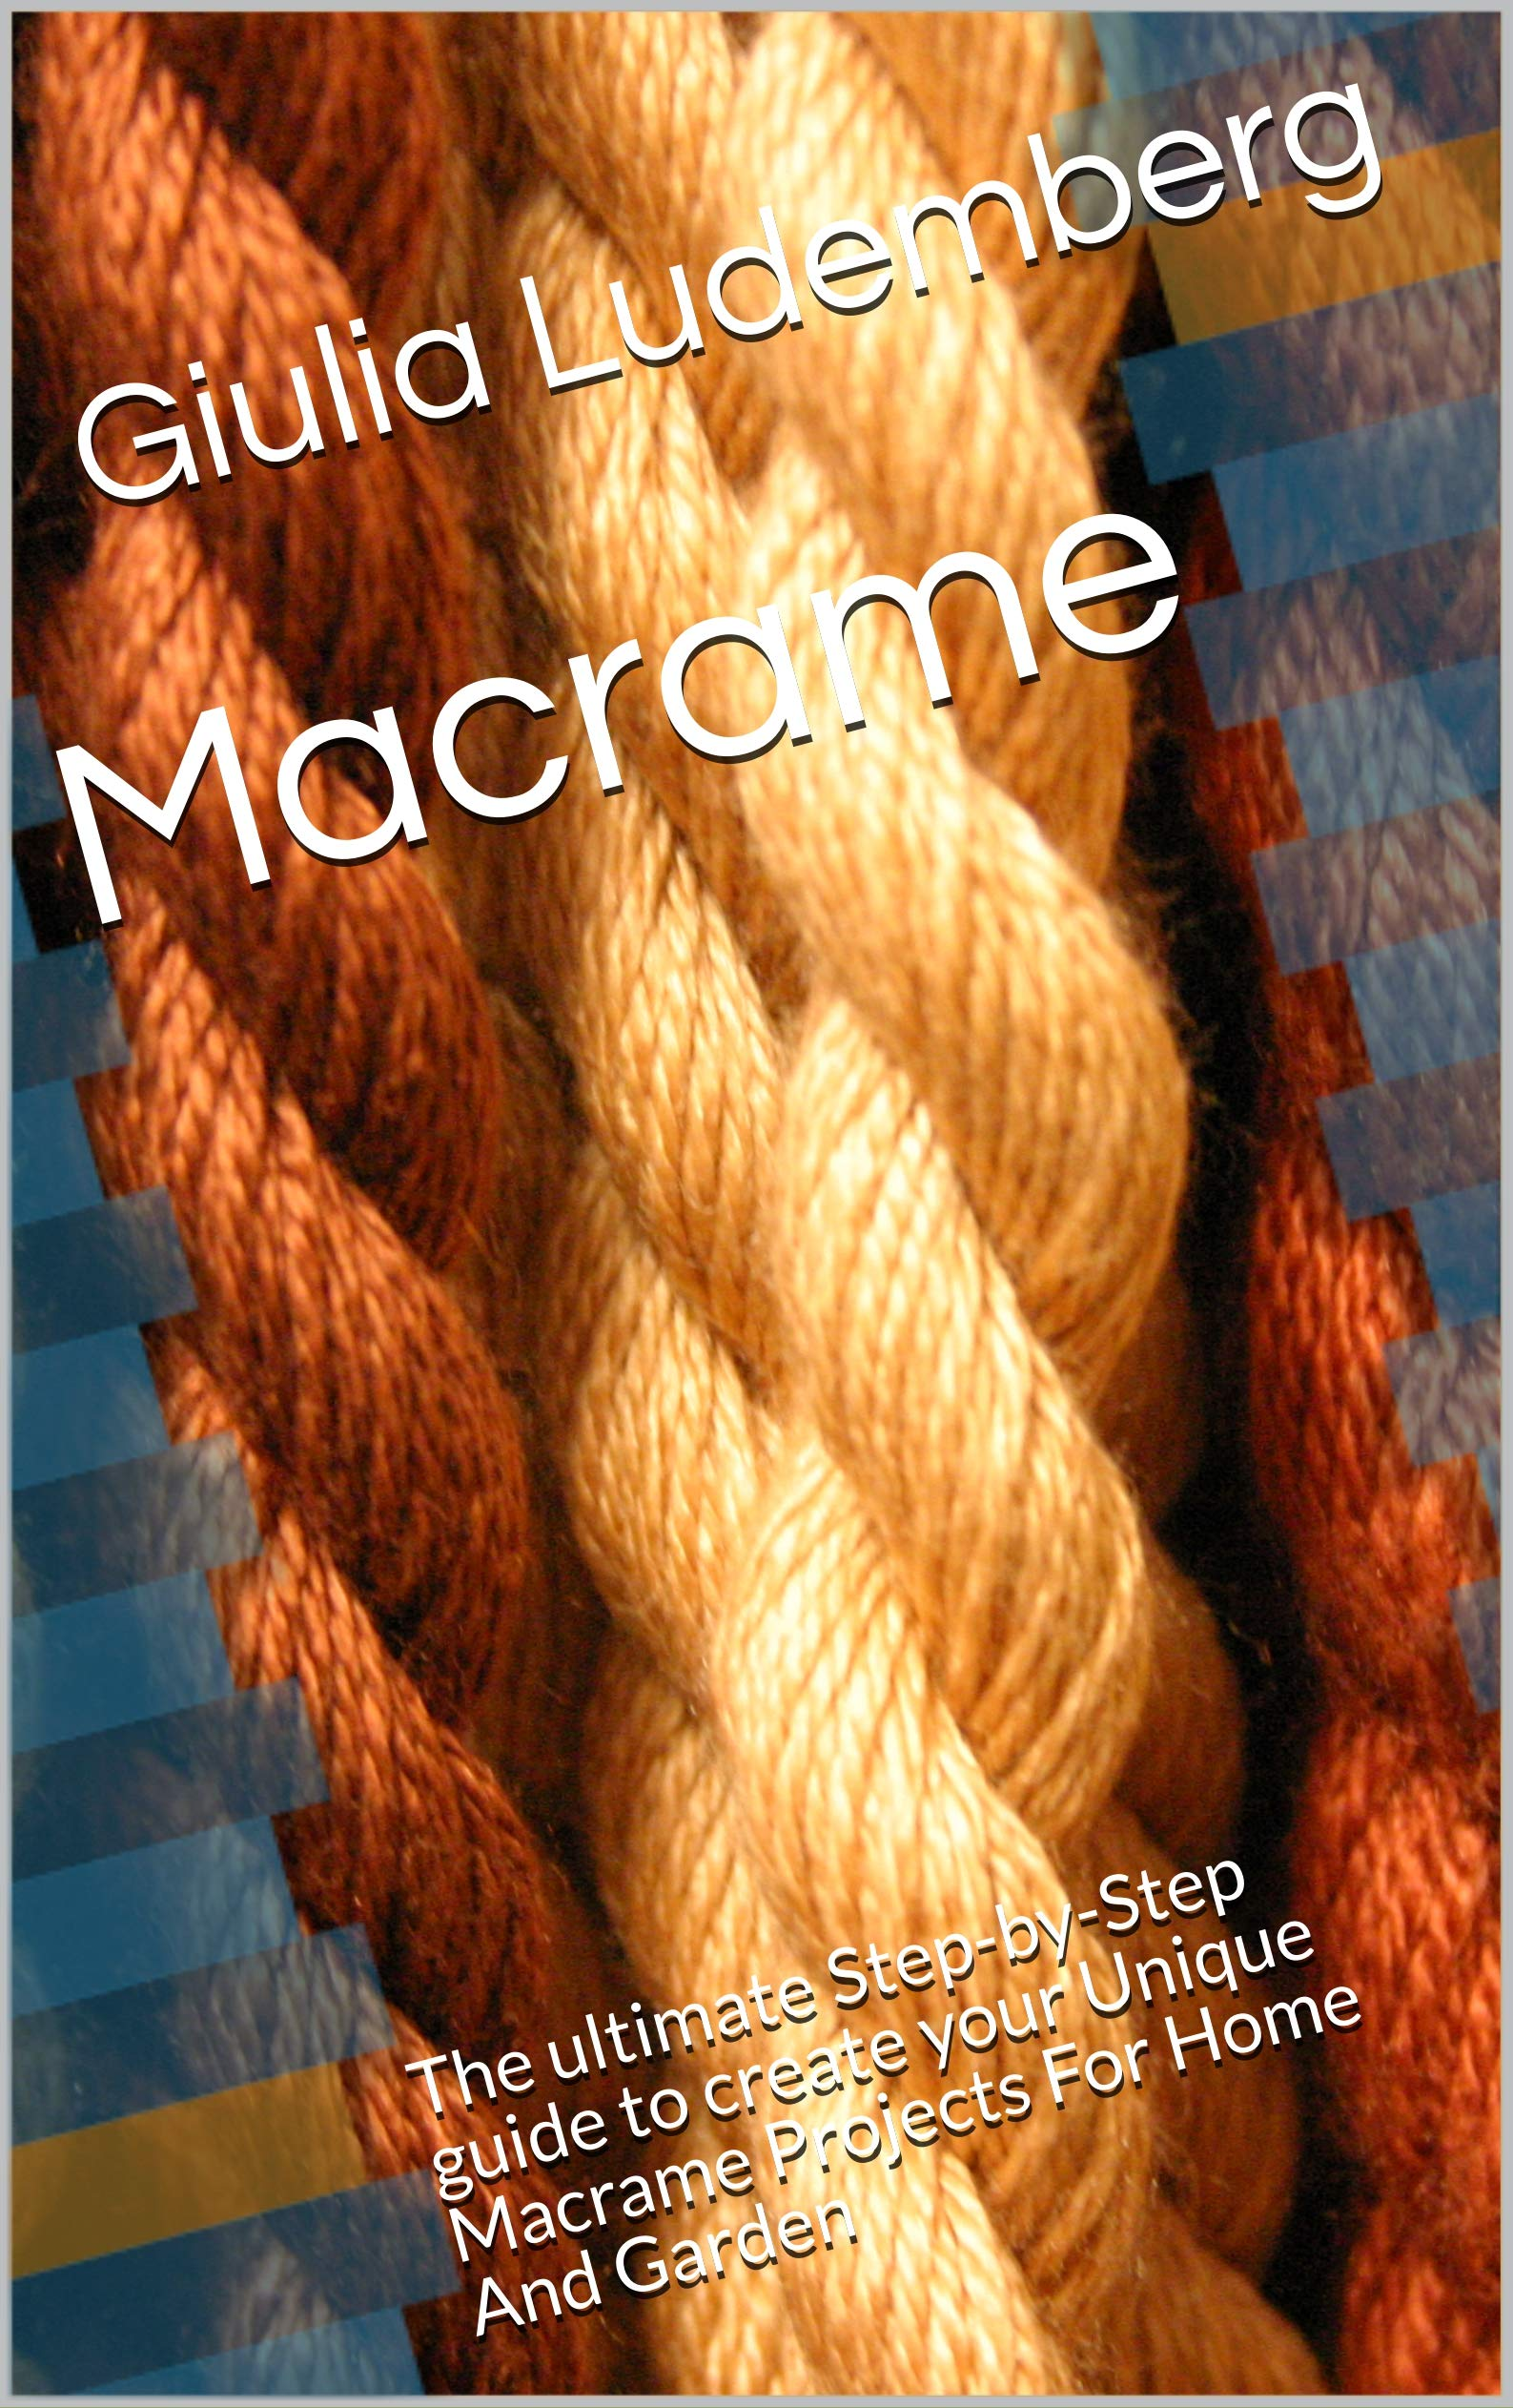 Macrame: The ultimate Step-by-Step guide to create your Unique Macrame Projects For Home And Garden